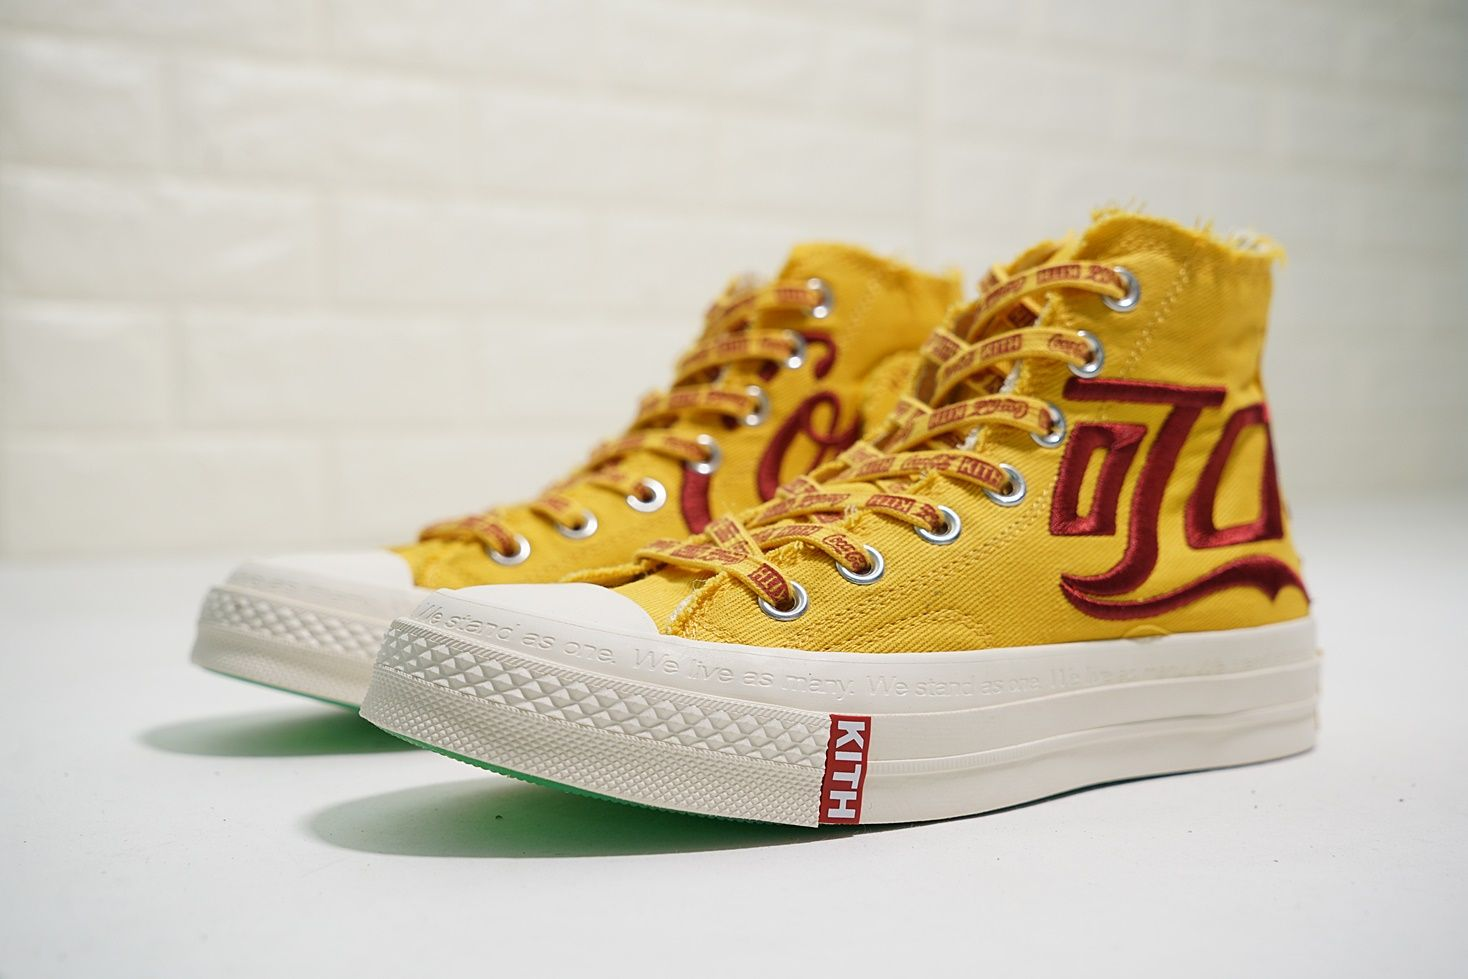 1d0210d0a4cd KITH X COCA COLA CONVERSE CHUCK TAYLOR ALL STAR YELLOW RED162985C ...